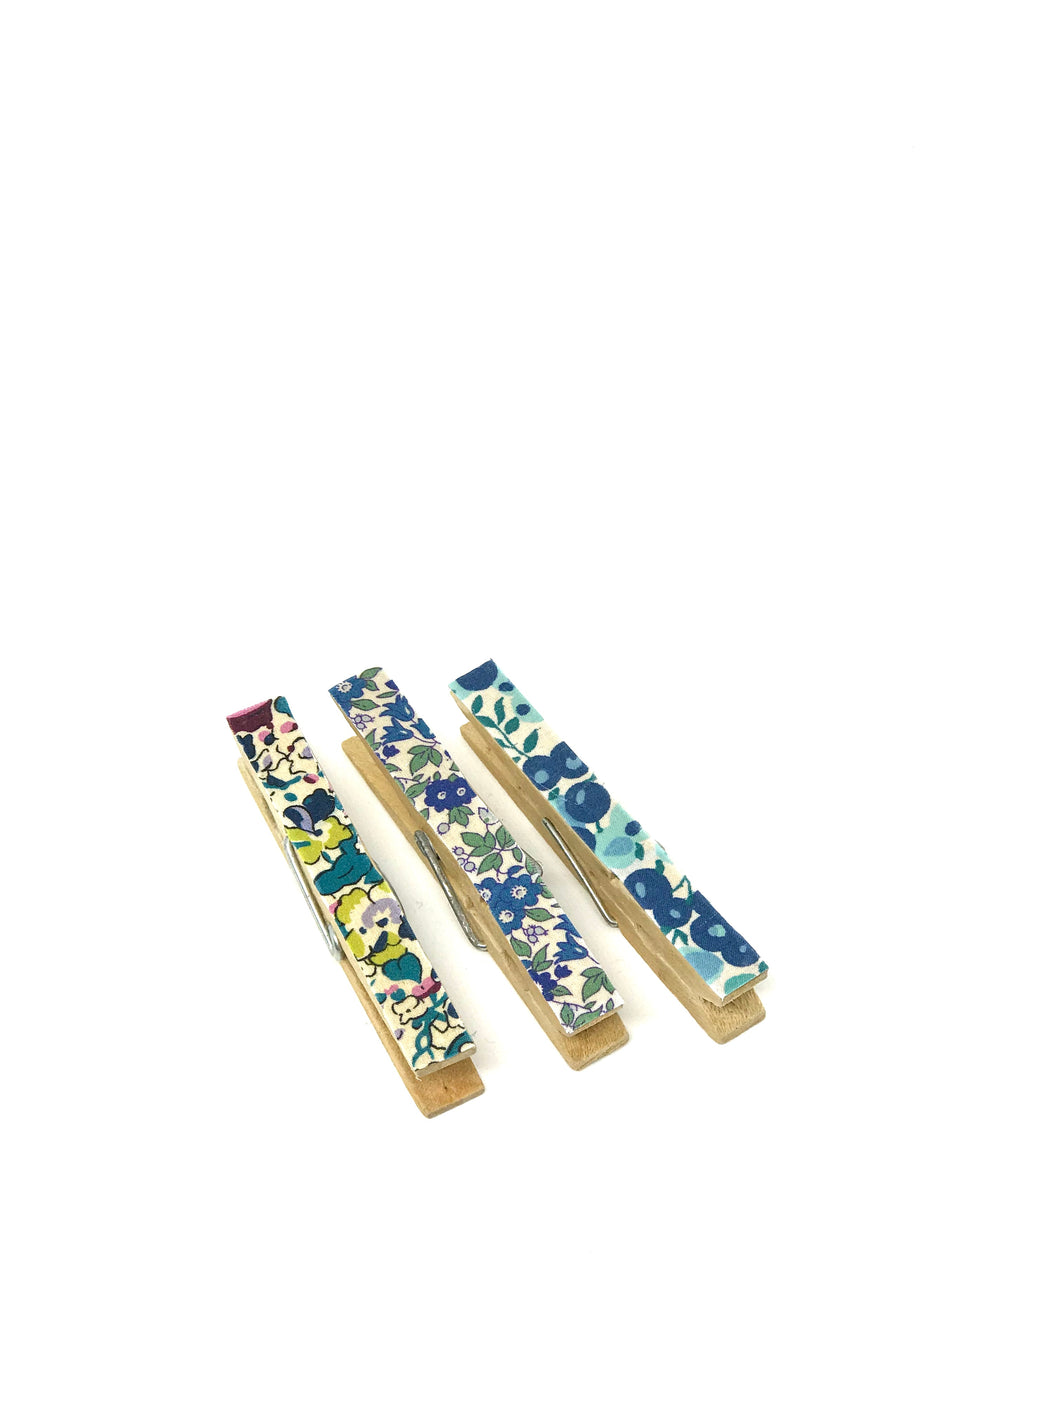 Liberty wooden pegs